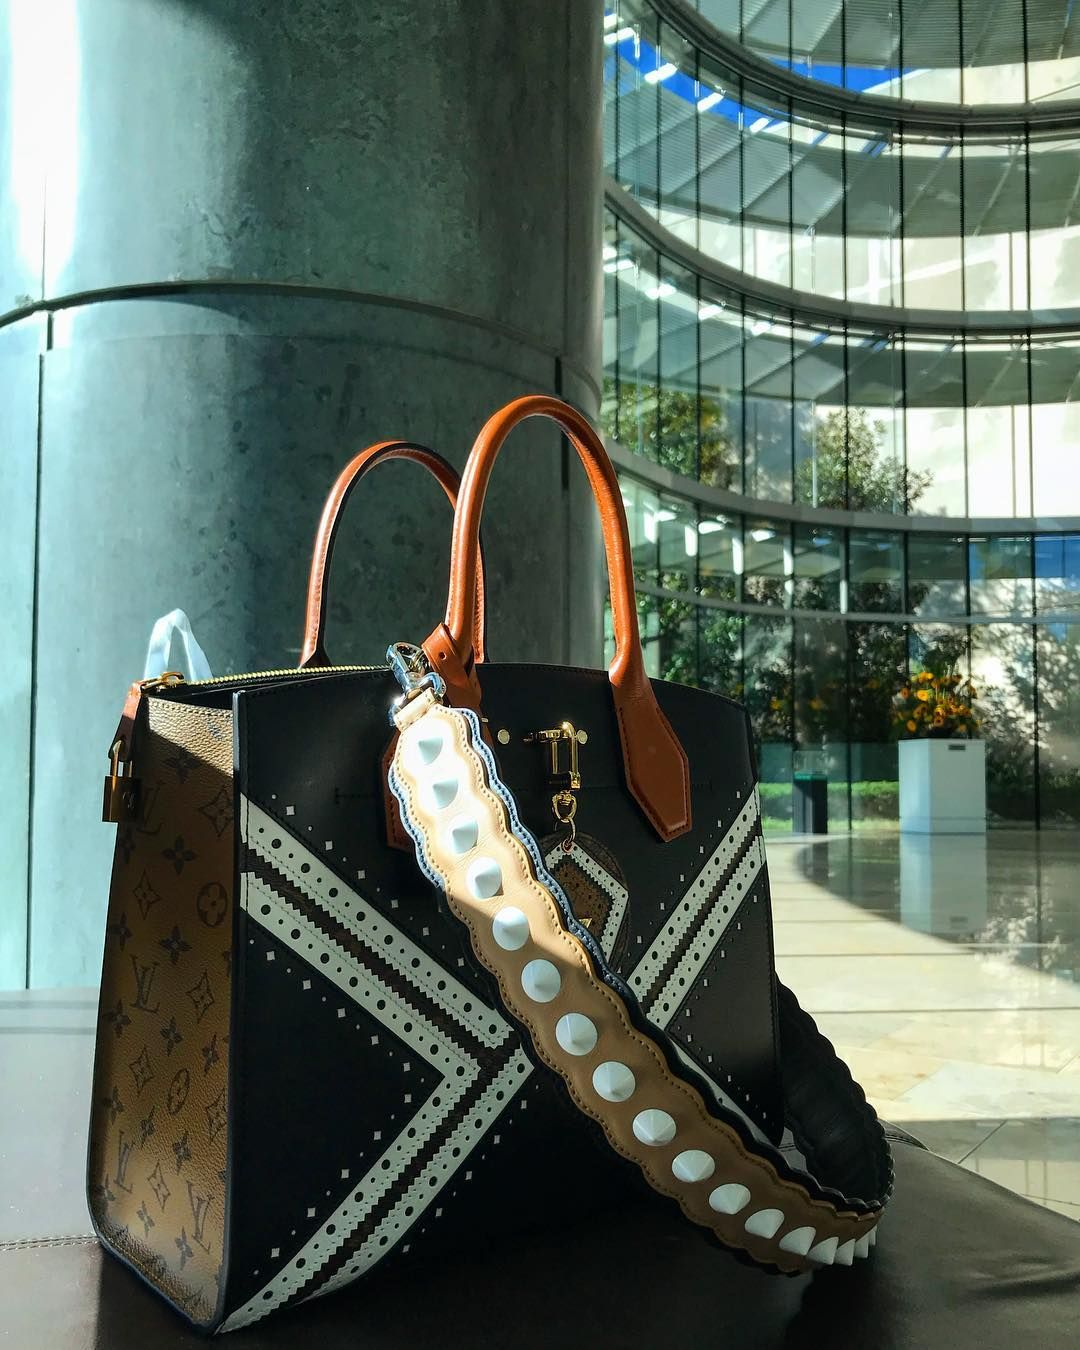 c2771e49ad51 Louis Vuitton Monogram is Back and Better Than Ever